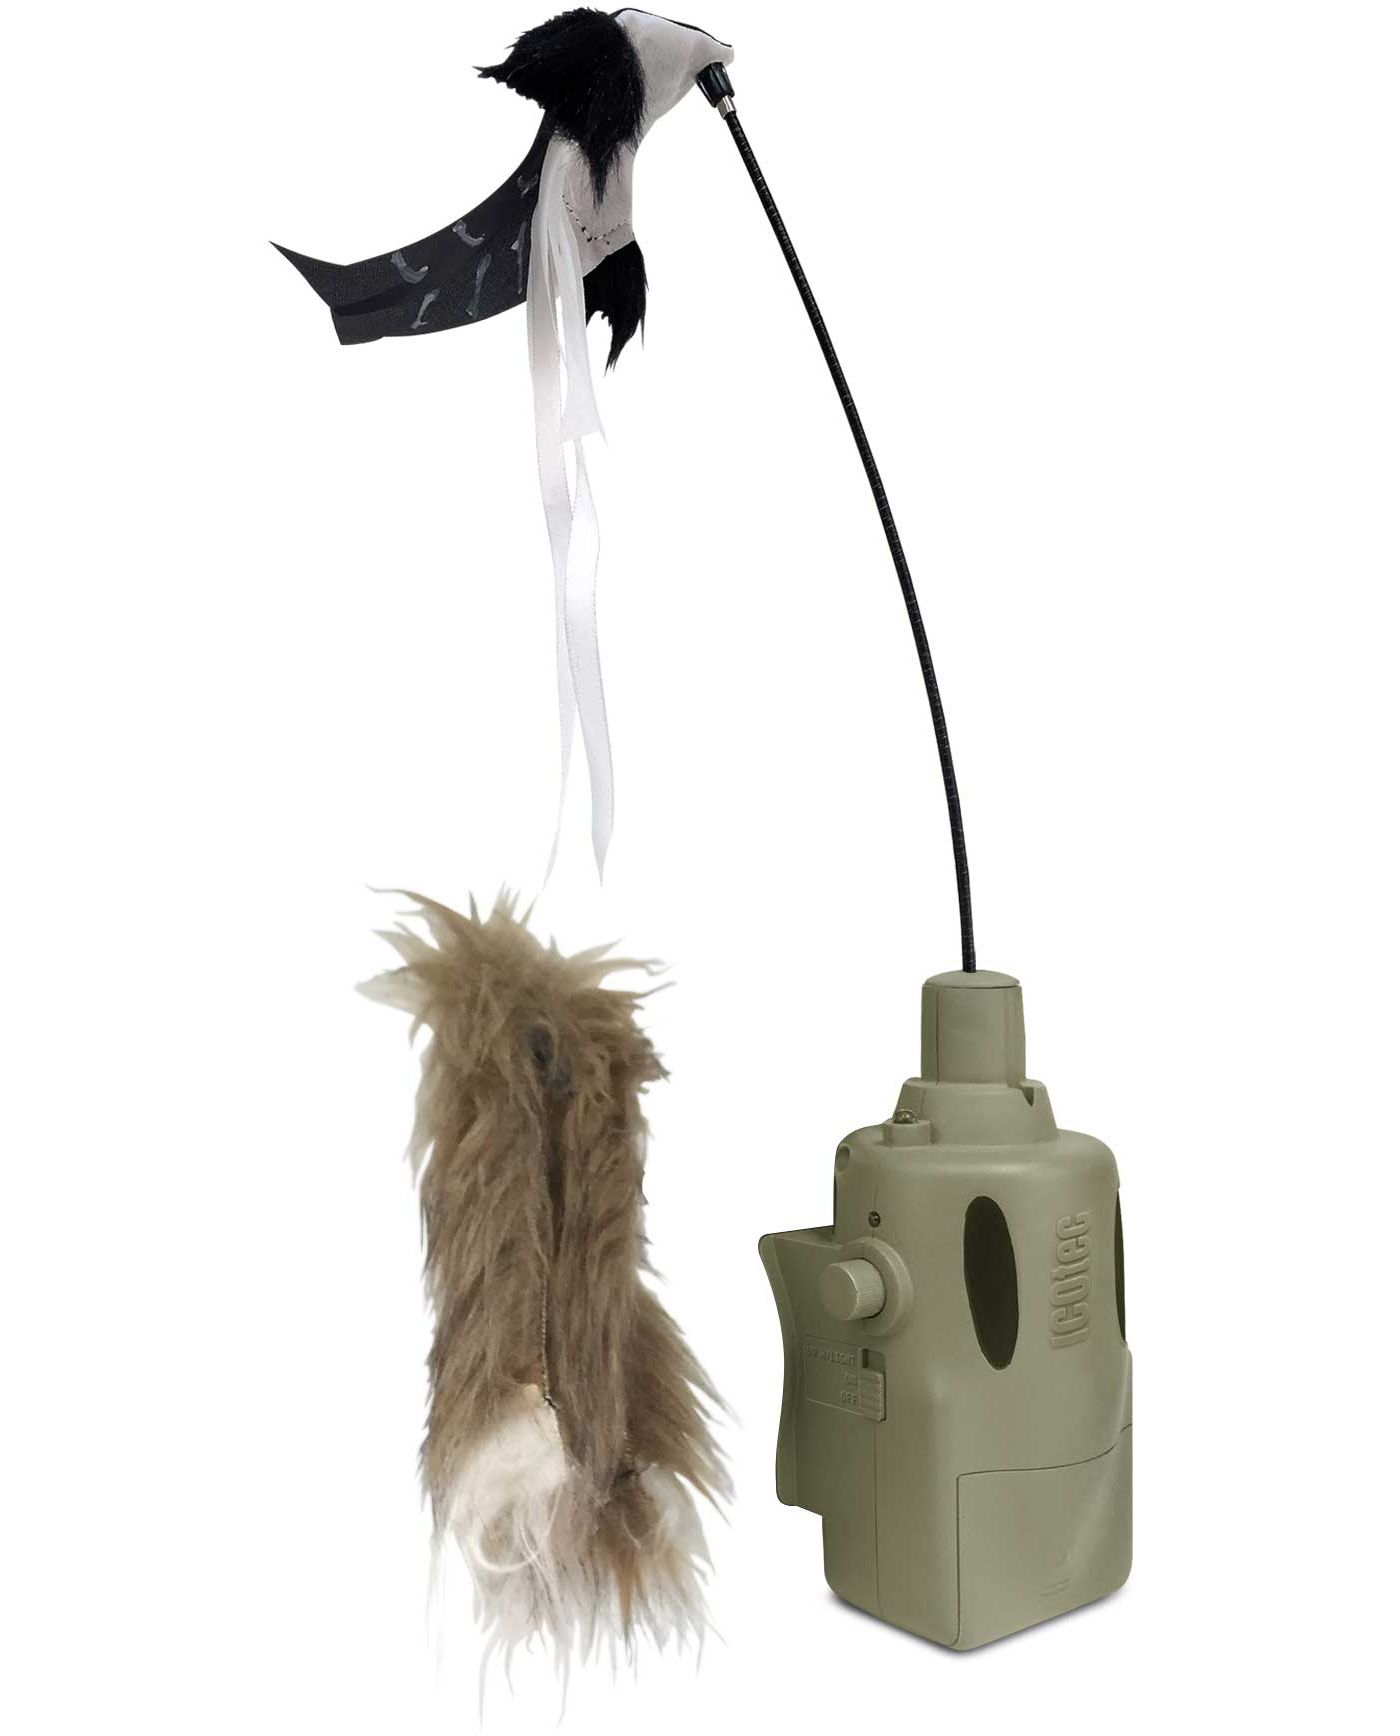 ICOtec AD400 Attachable Decoy